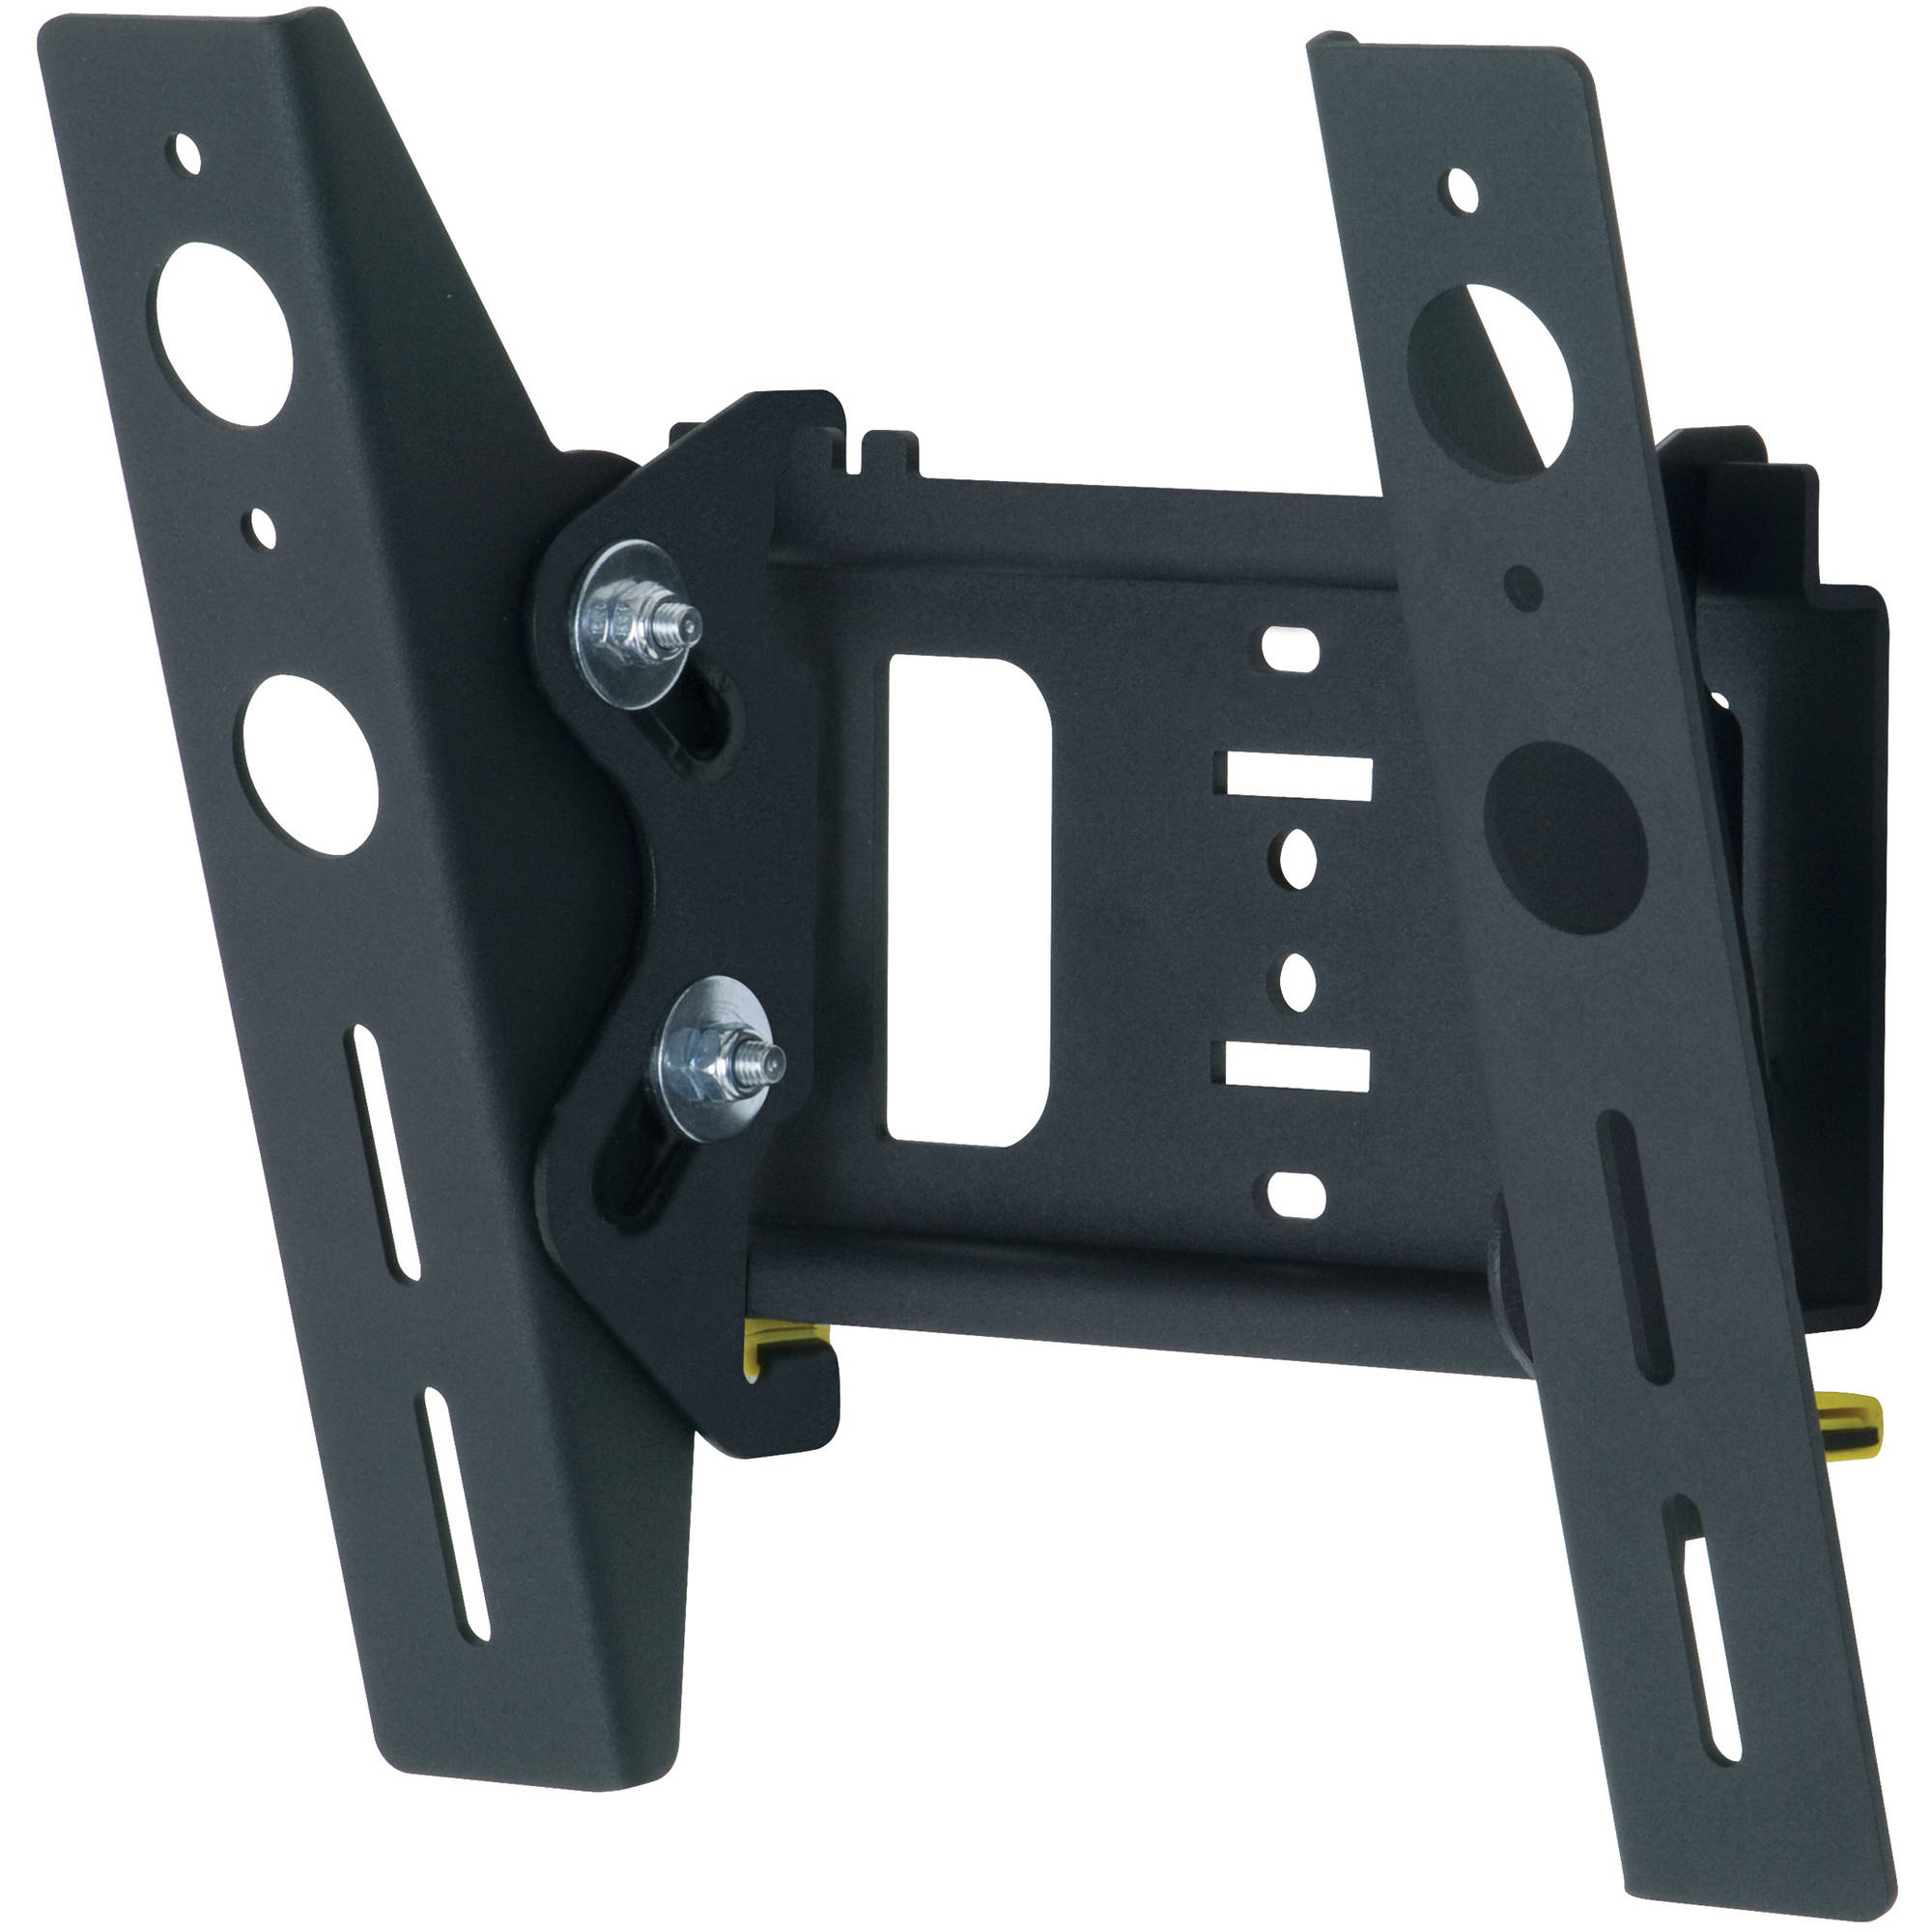 "AVF EL201B-A Adjustable Tilt TV Mount for 25""-32"" Flat Panel TVs"